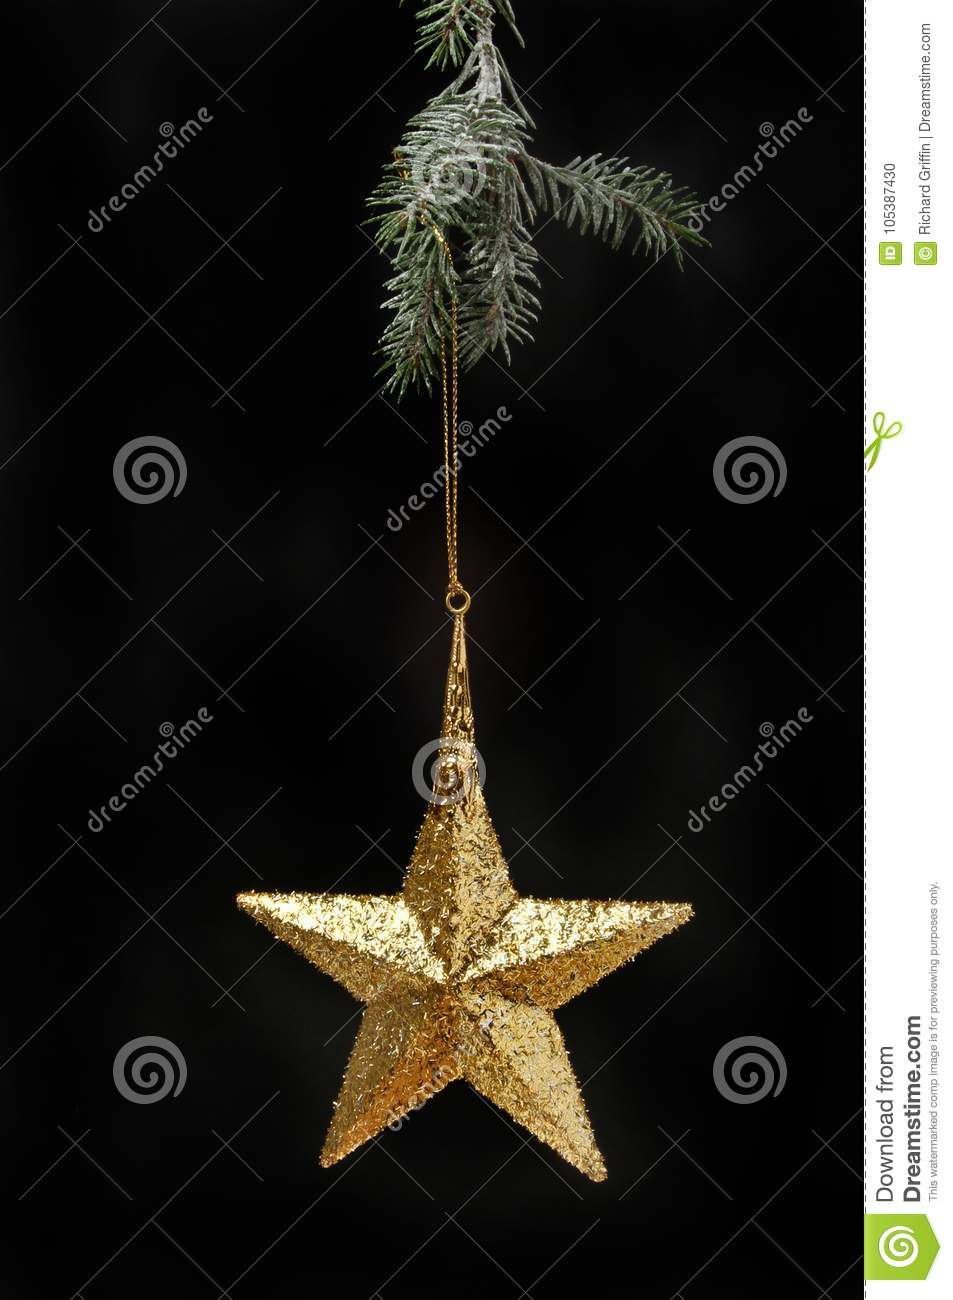 Star decoration in a tree